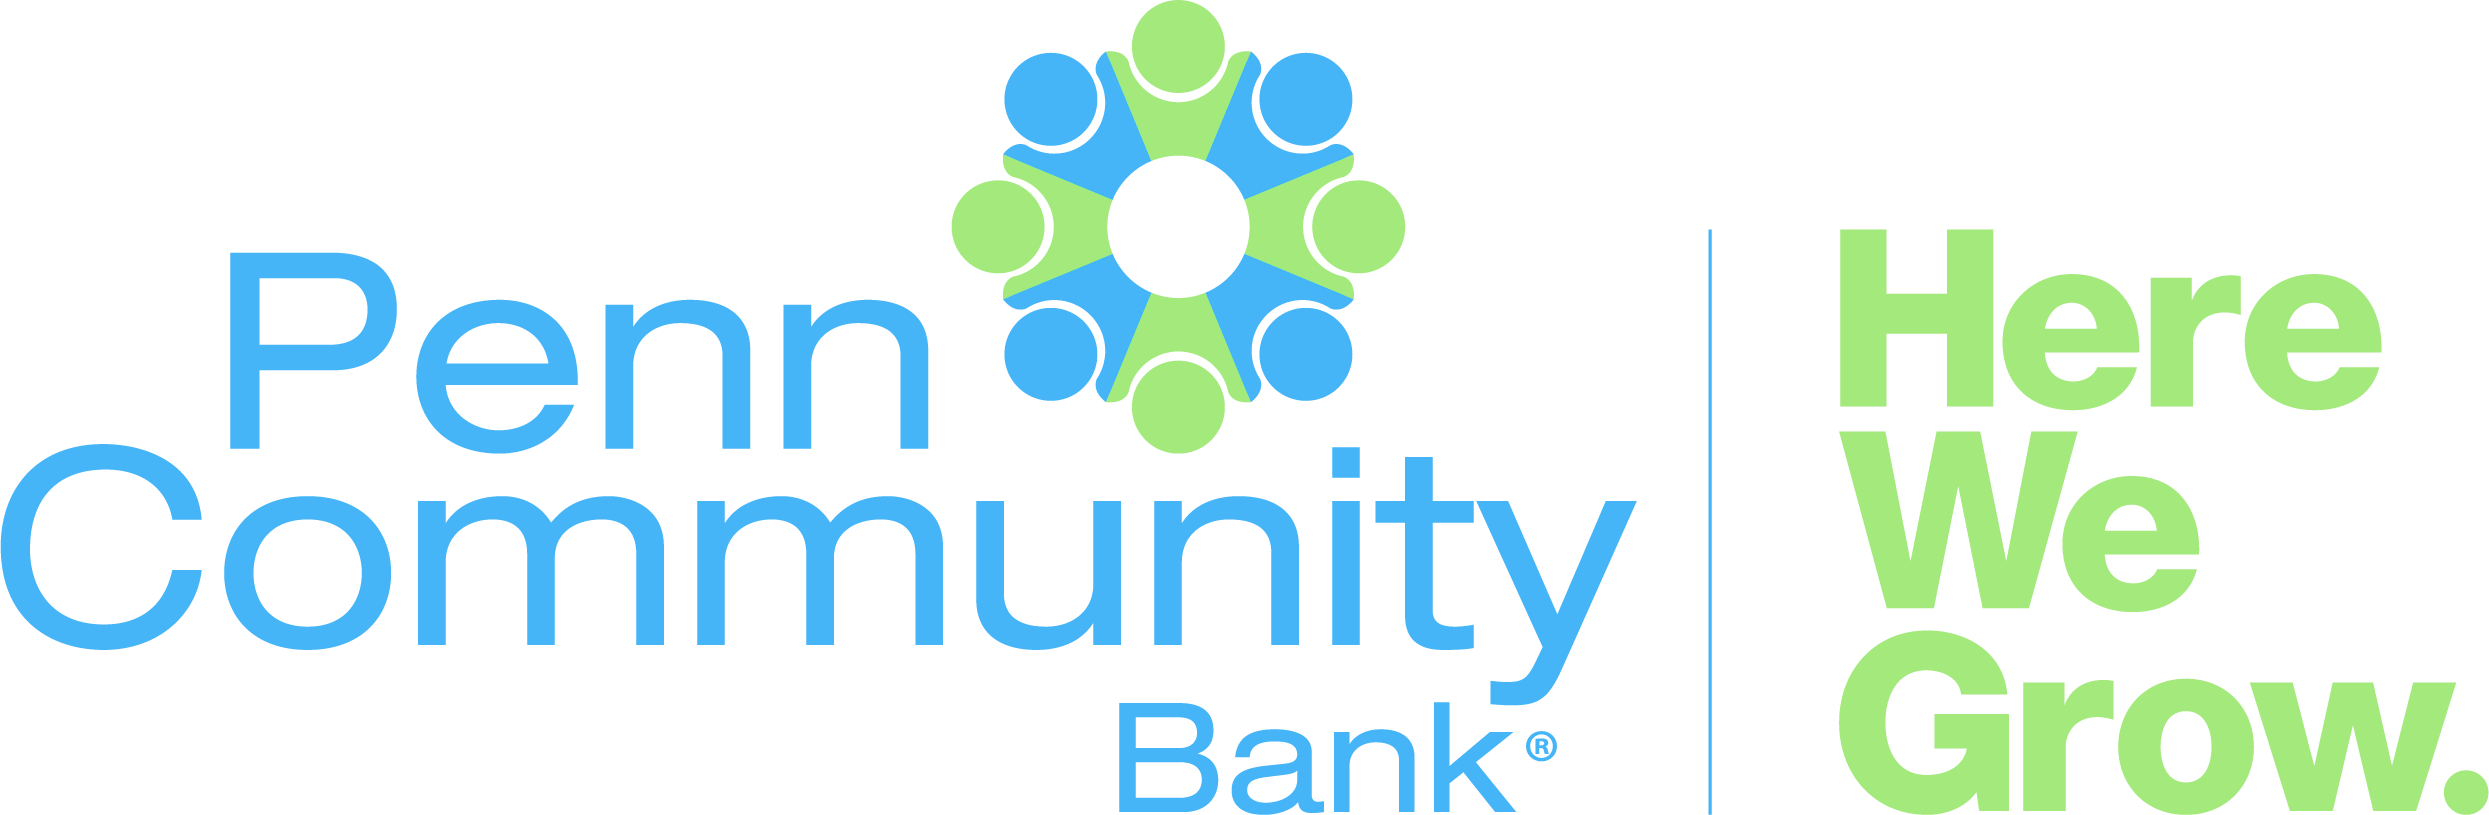 Penn Community Bank Logo. Here We Grow